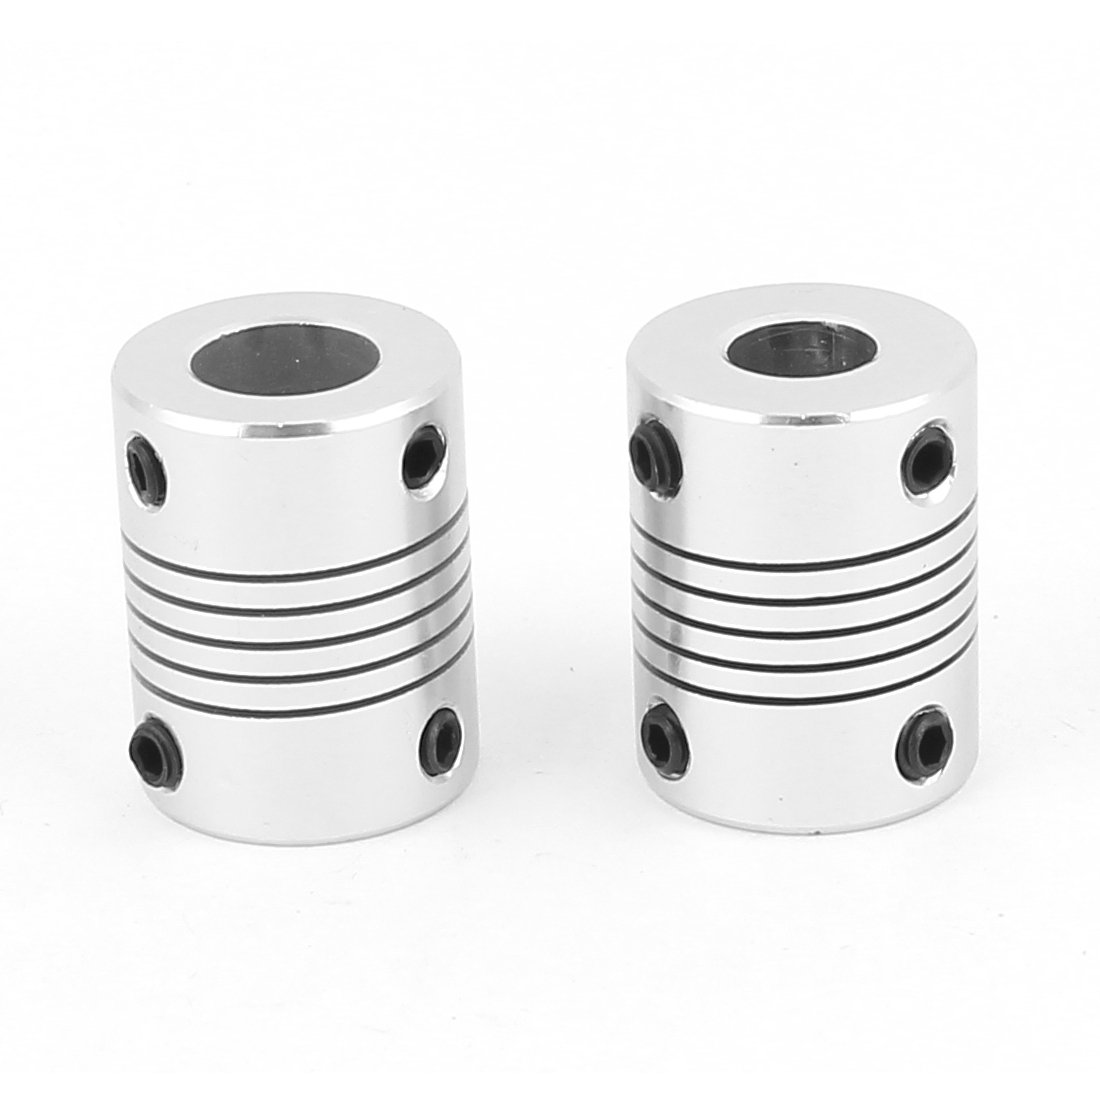 sourcing map 2 Pcs Motor Shaft Dia 8mm to 10mm Joint Helical Beam Coupler Coupling D19L25 a16030800ux0222